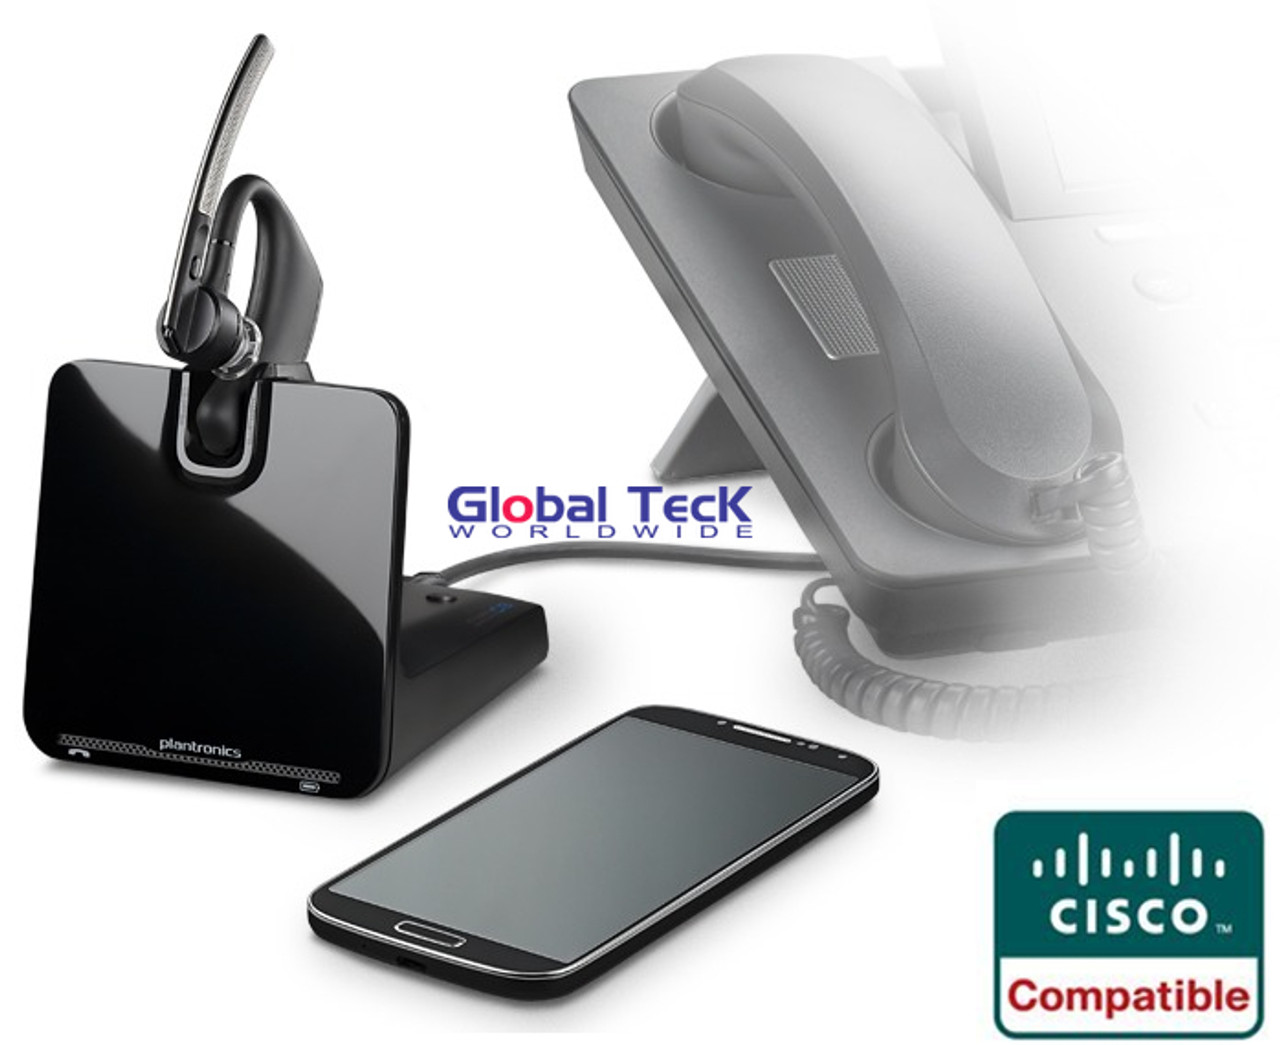 Cisco Compatible Plantronics Voyager Legend Cs Plantronics Bluetooth Wireless Headset 88863 01 Plantronics Dual Usage Wireless Headset For The Office